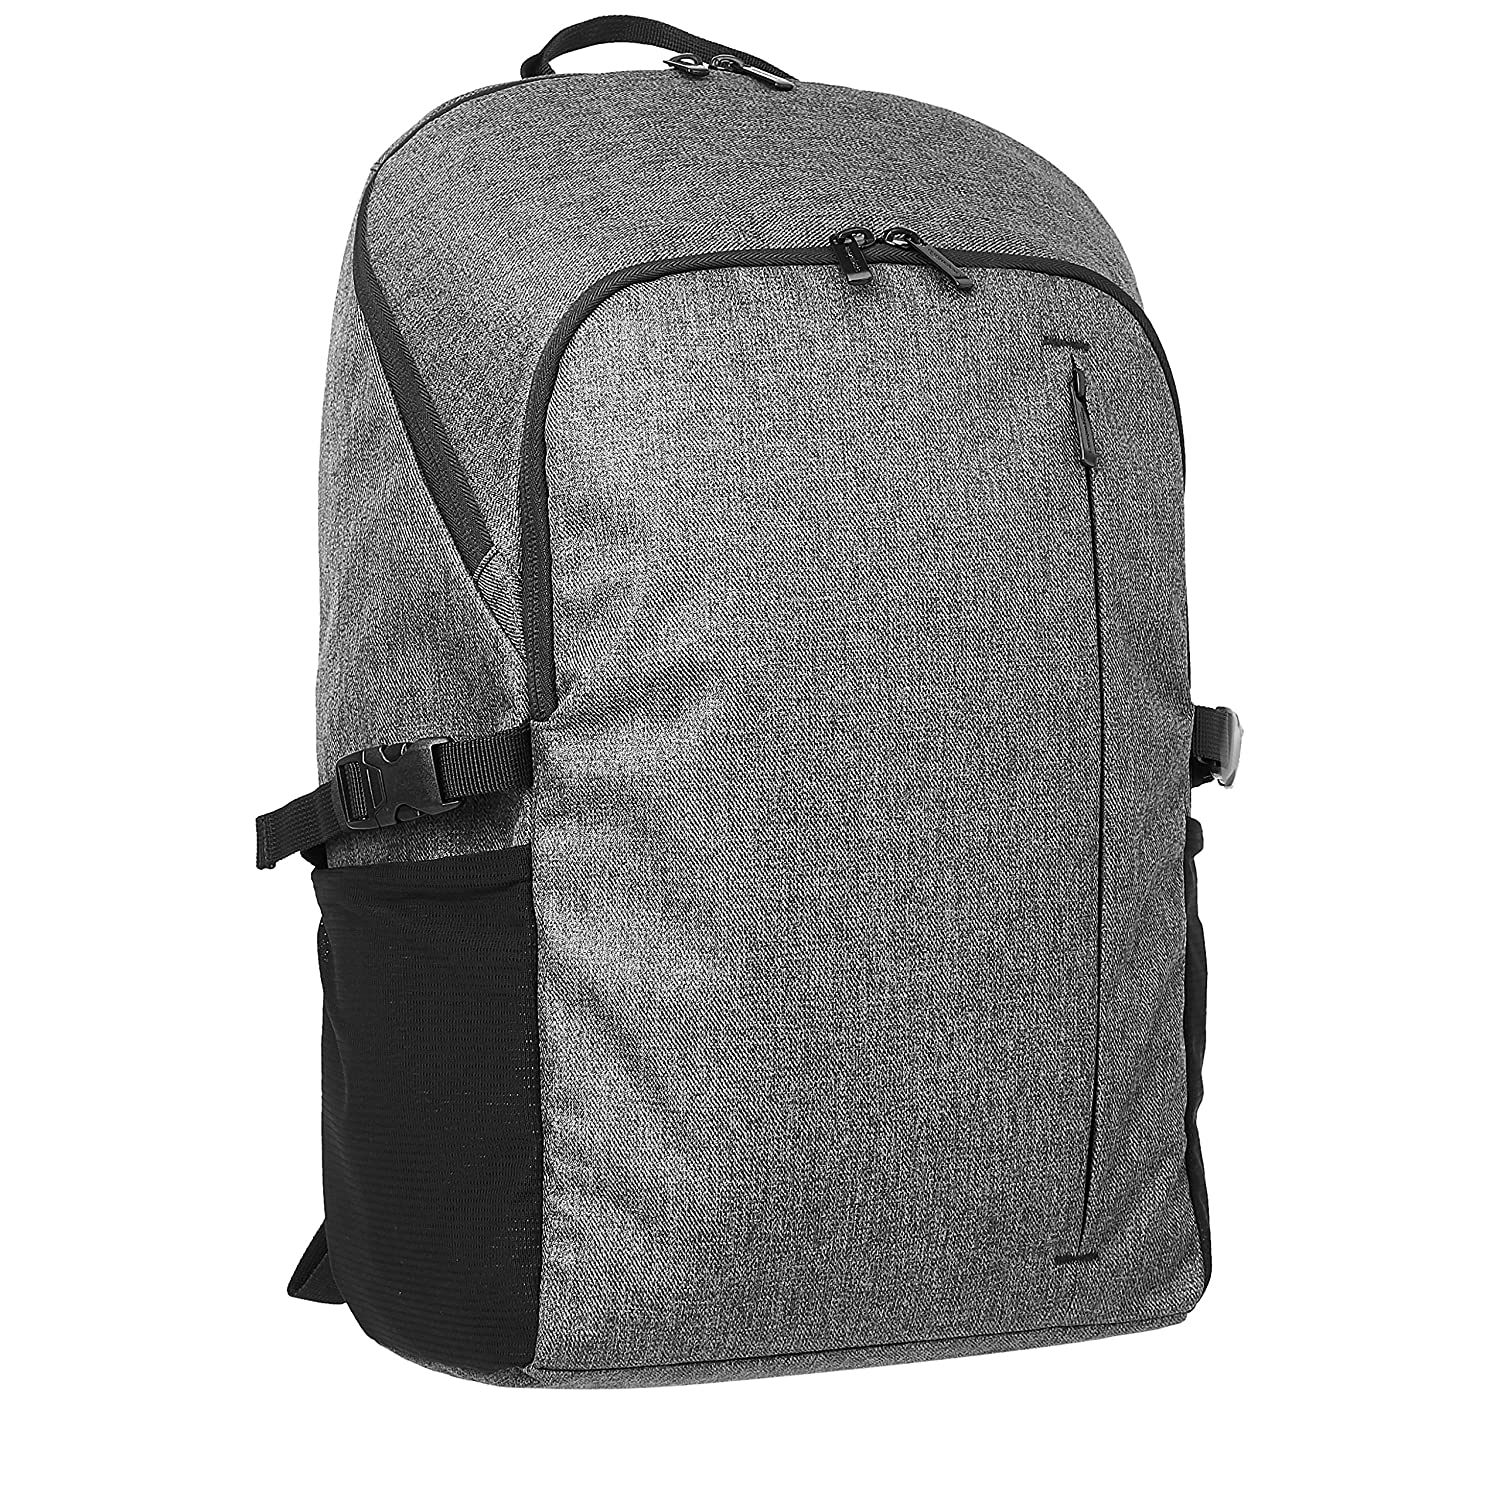 AmazonBasics Campus Backpack for Laptops up to 15-Inches – Grey